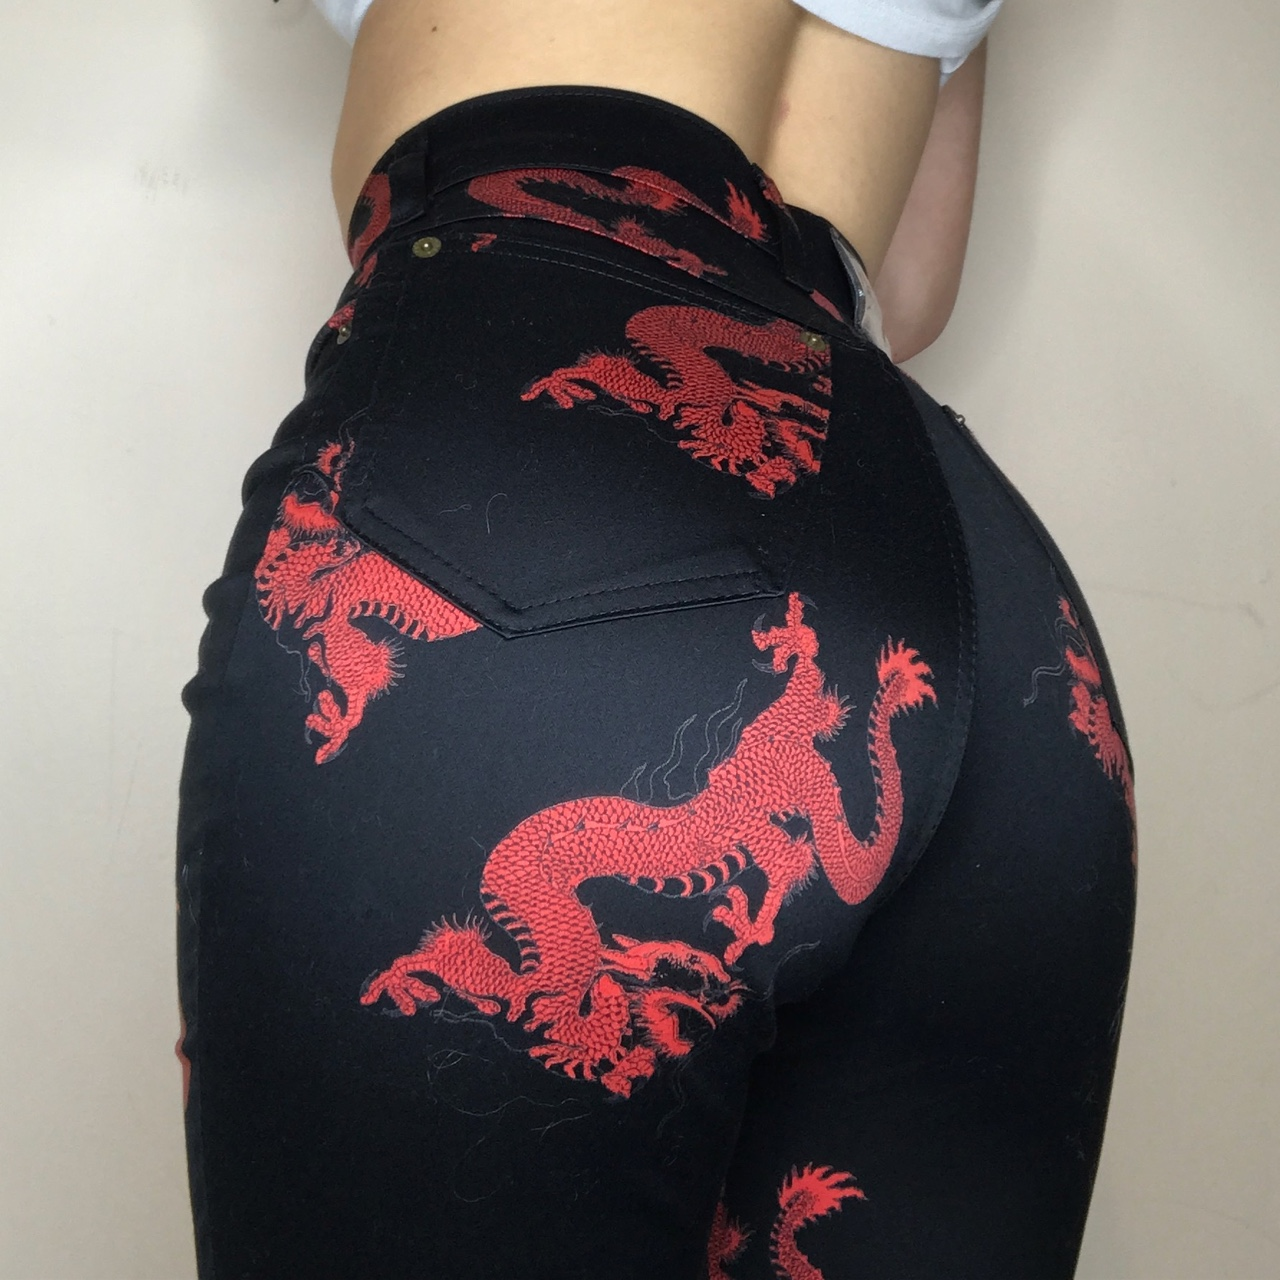 high waisted dragon pant by tark absolutely divine 1998 128009 high waisted dragon pant 128009 by tark 1 absolutely divine black soft stretch pant made of cotton polyester lycra covered in red detailed dragons